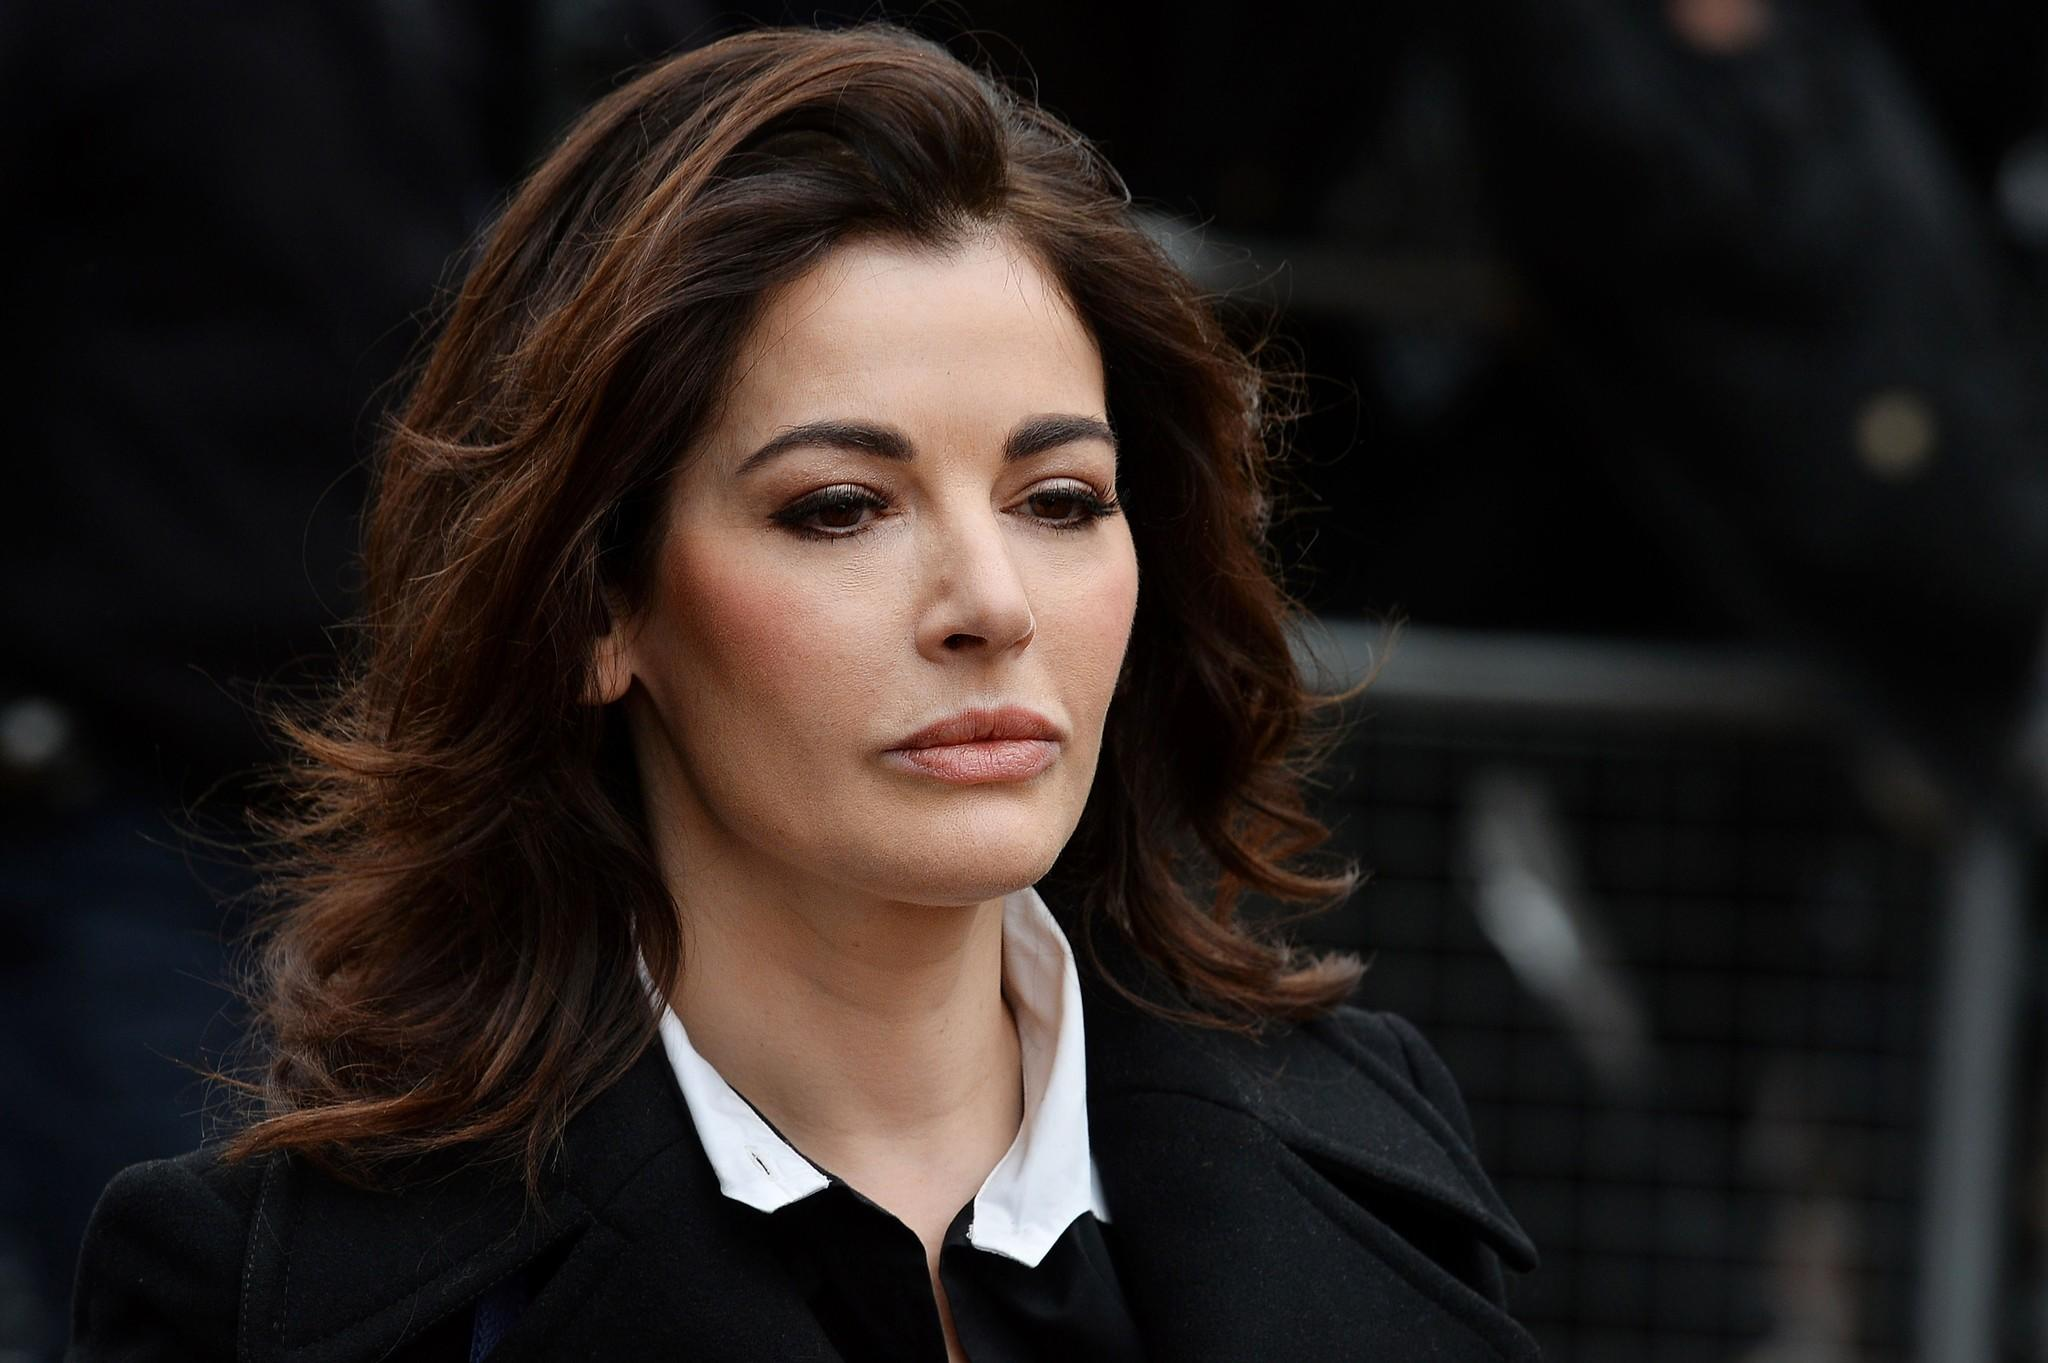 British television chef Nigella Lawson arrives at Isleworth Crown Court in west London.